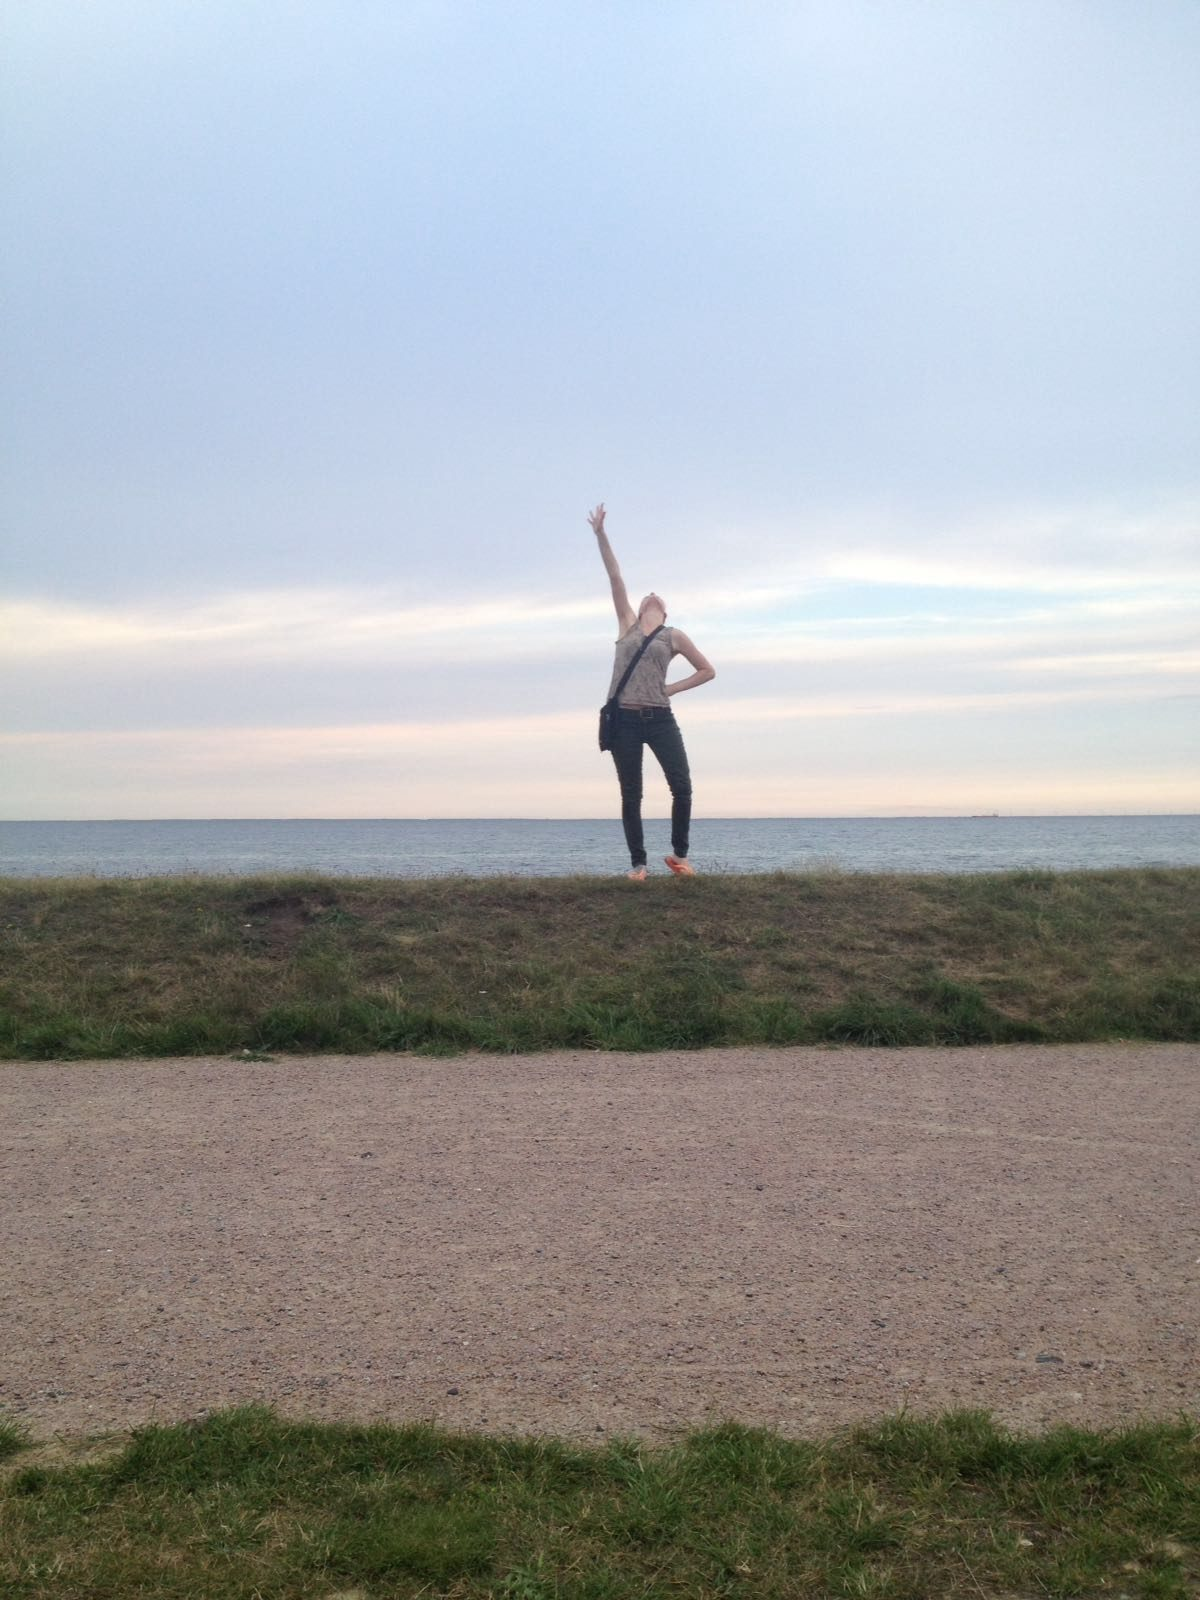 Unsere Insel: Fehmarn Belt ♥